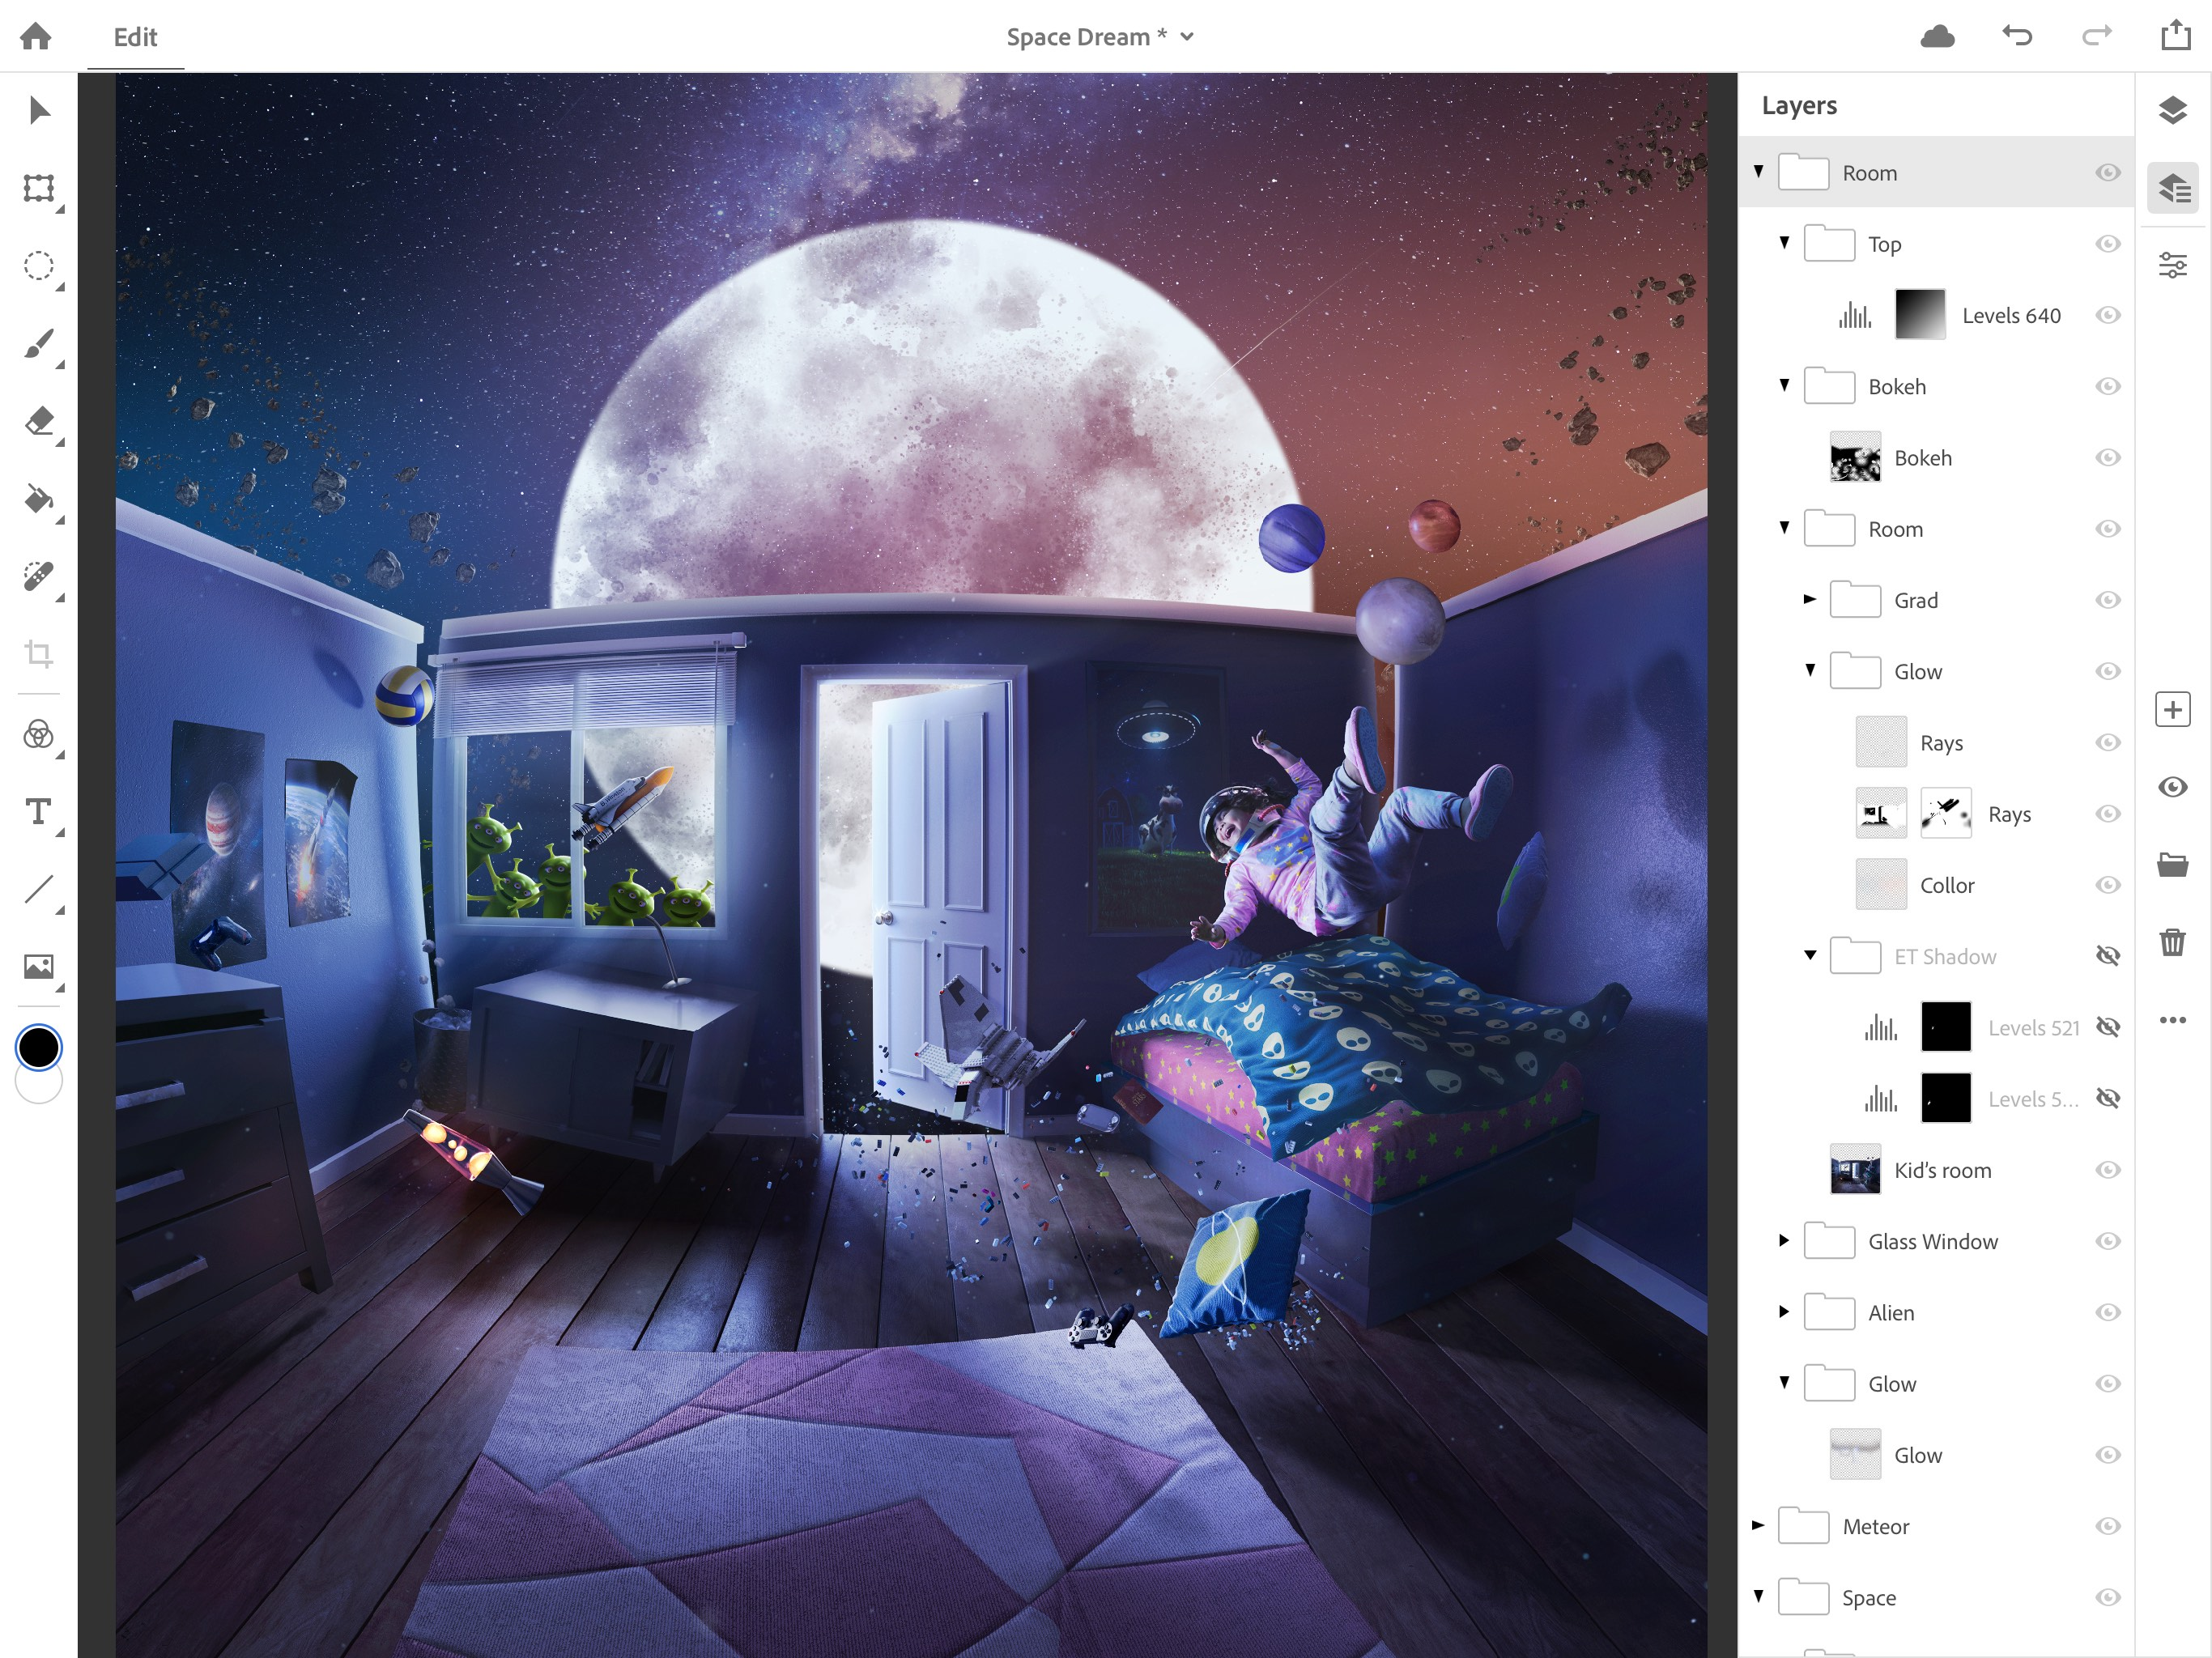 Adobe announces full Photoshop CC for iPad shipping 2019, syncs with